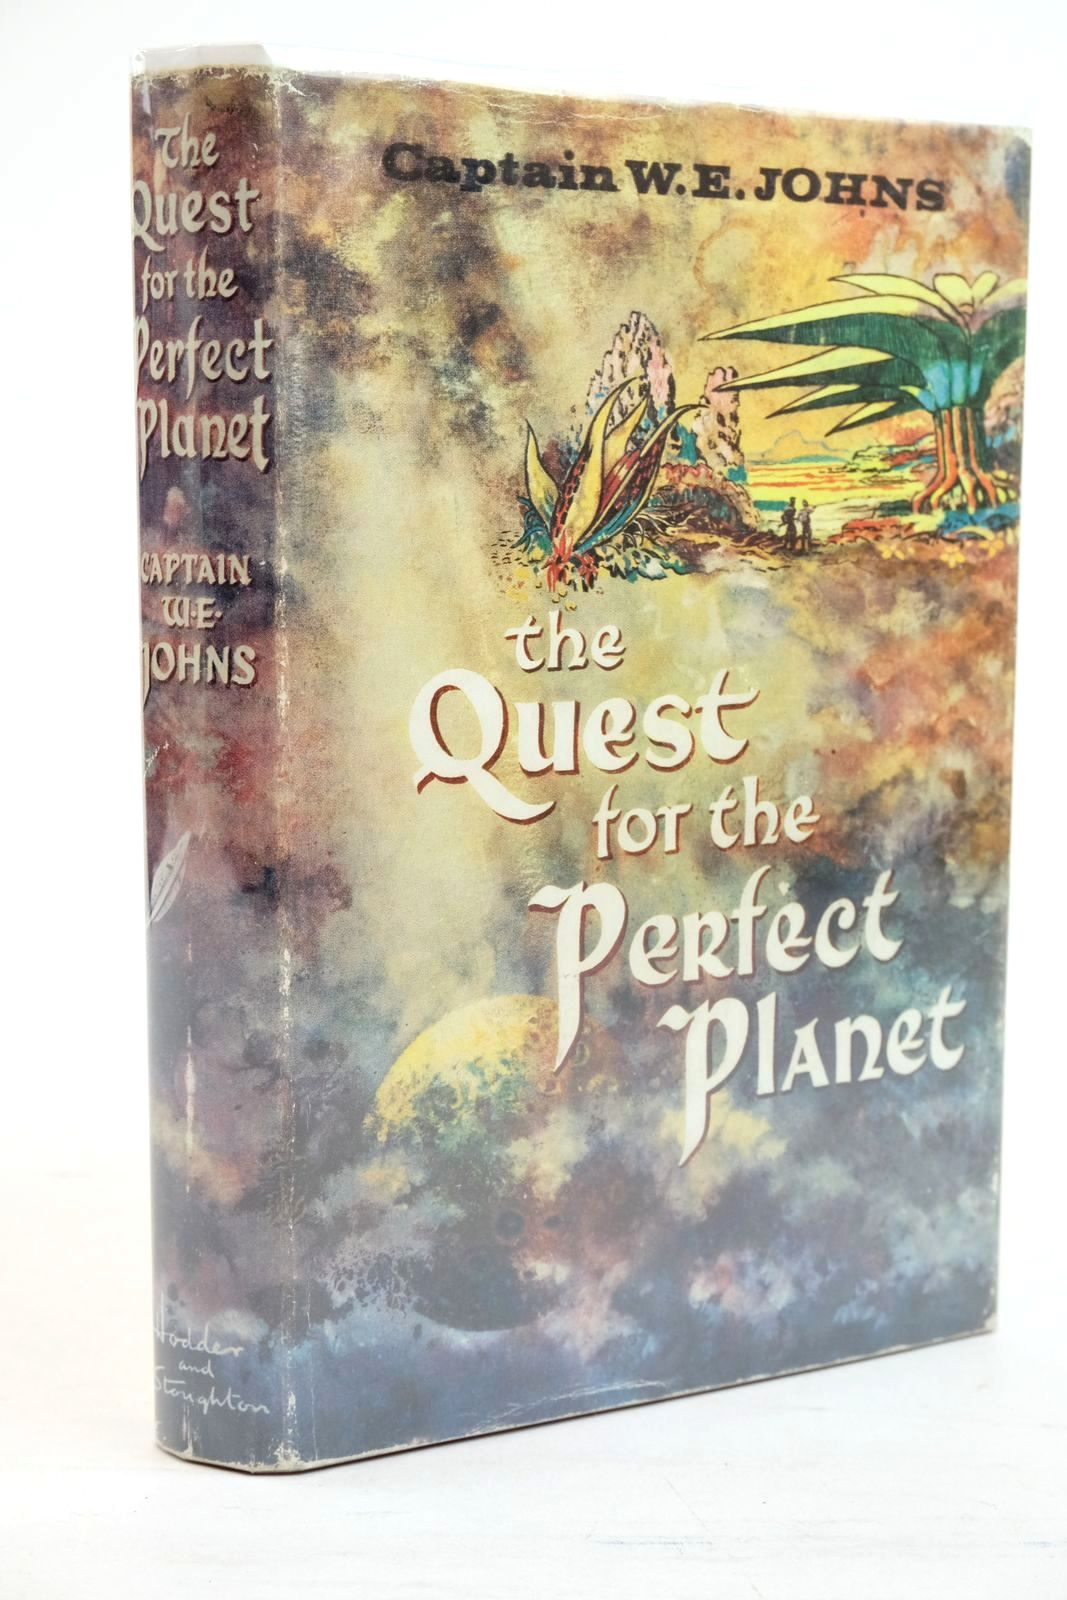 Photo of THE QUEST FOR THE PERFECT PLANET written by Johns, W.E. illustrated by Stead,  published by Hodder & Stoughton (STOCK CODE: 1320788)  for sale by Stella & Rose's Books